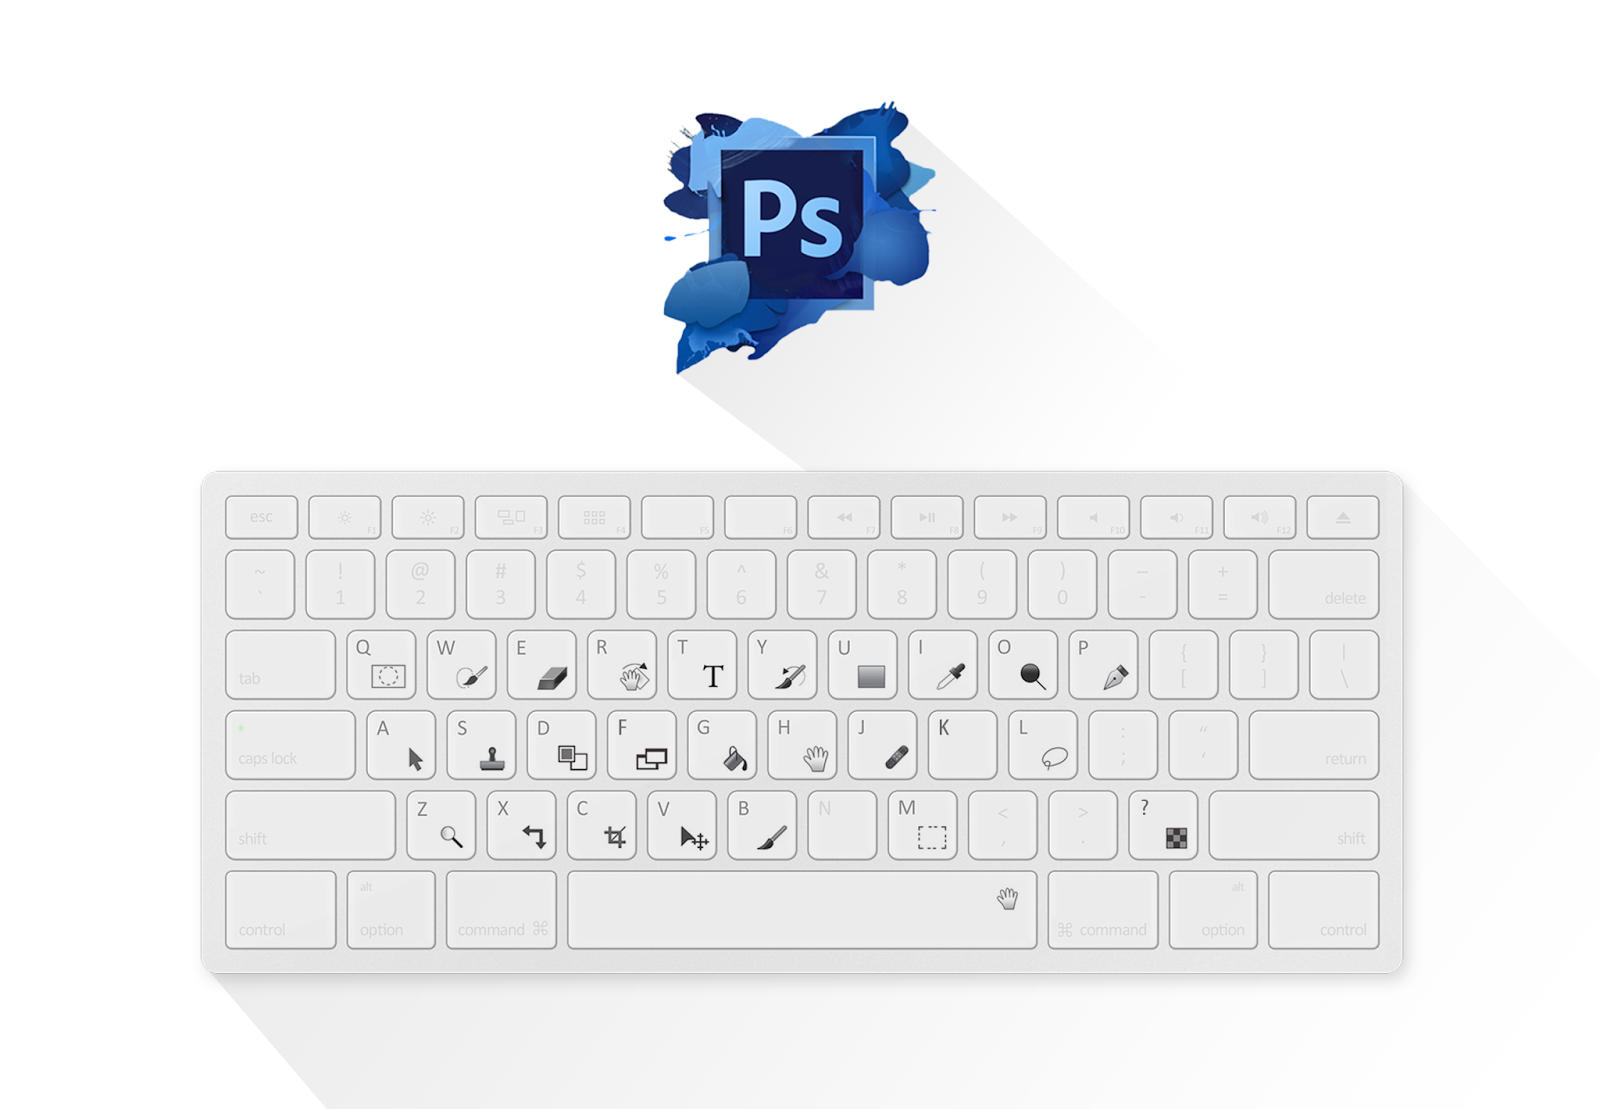 Default keyboard shortcuts in Adobe Photoshop